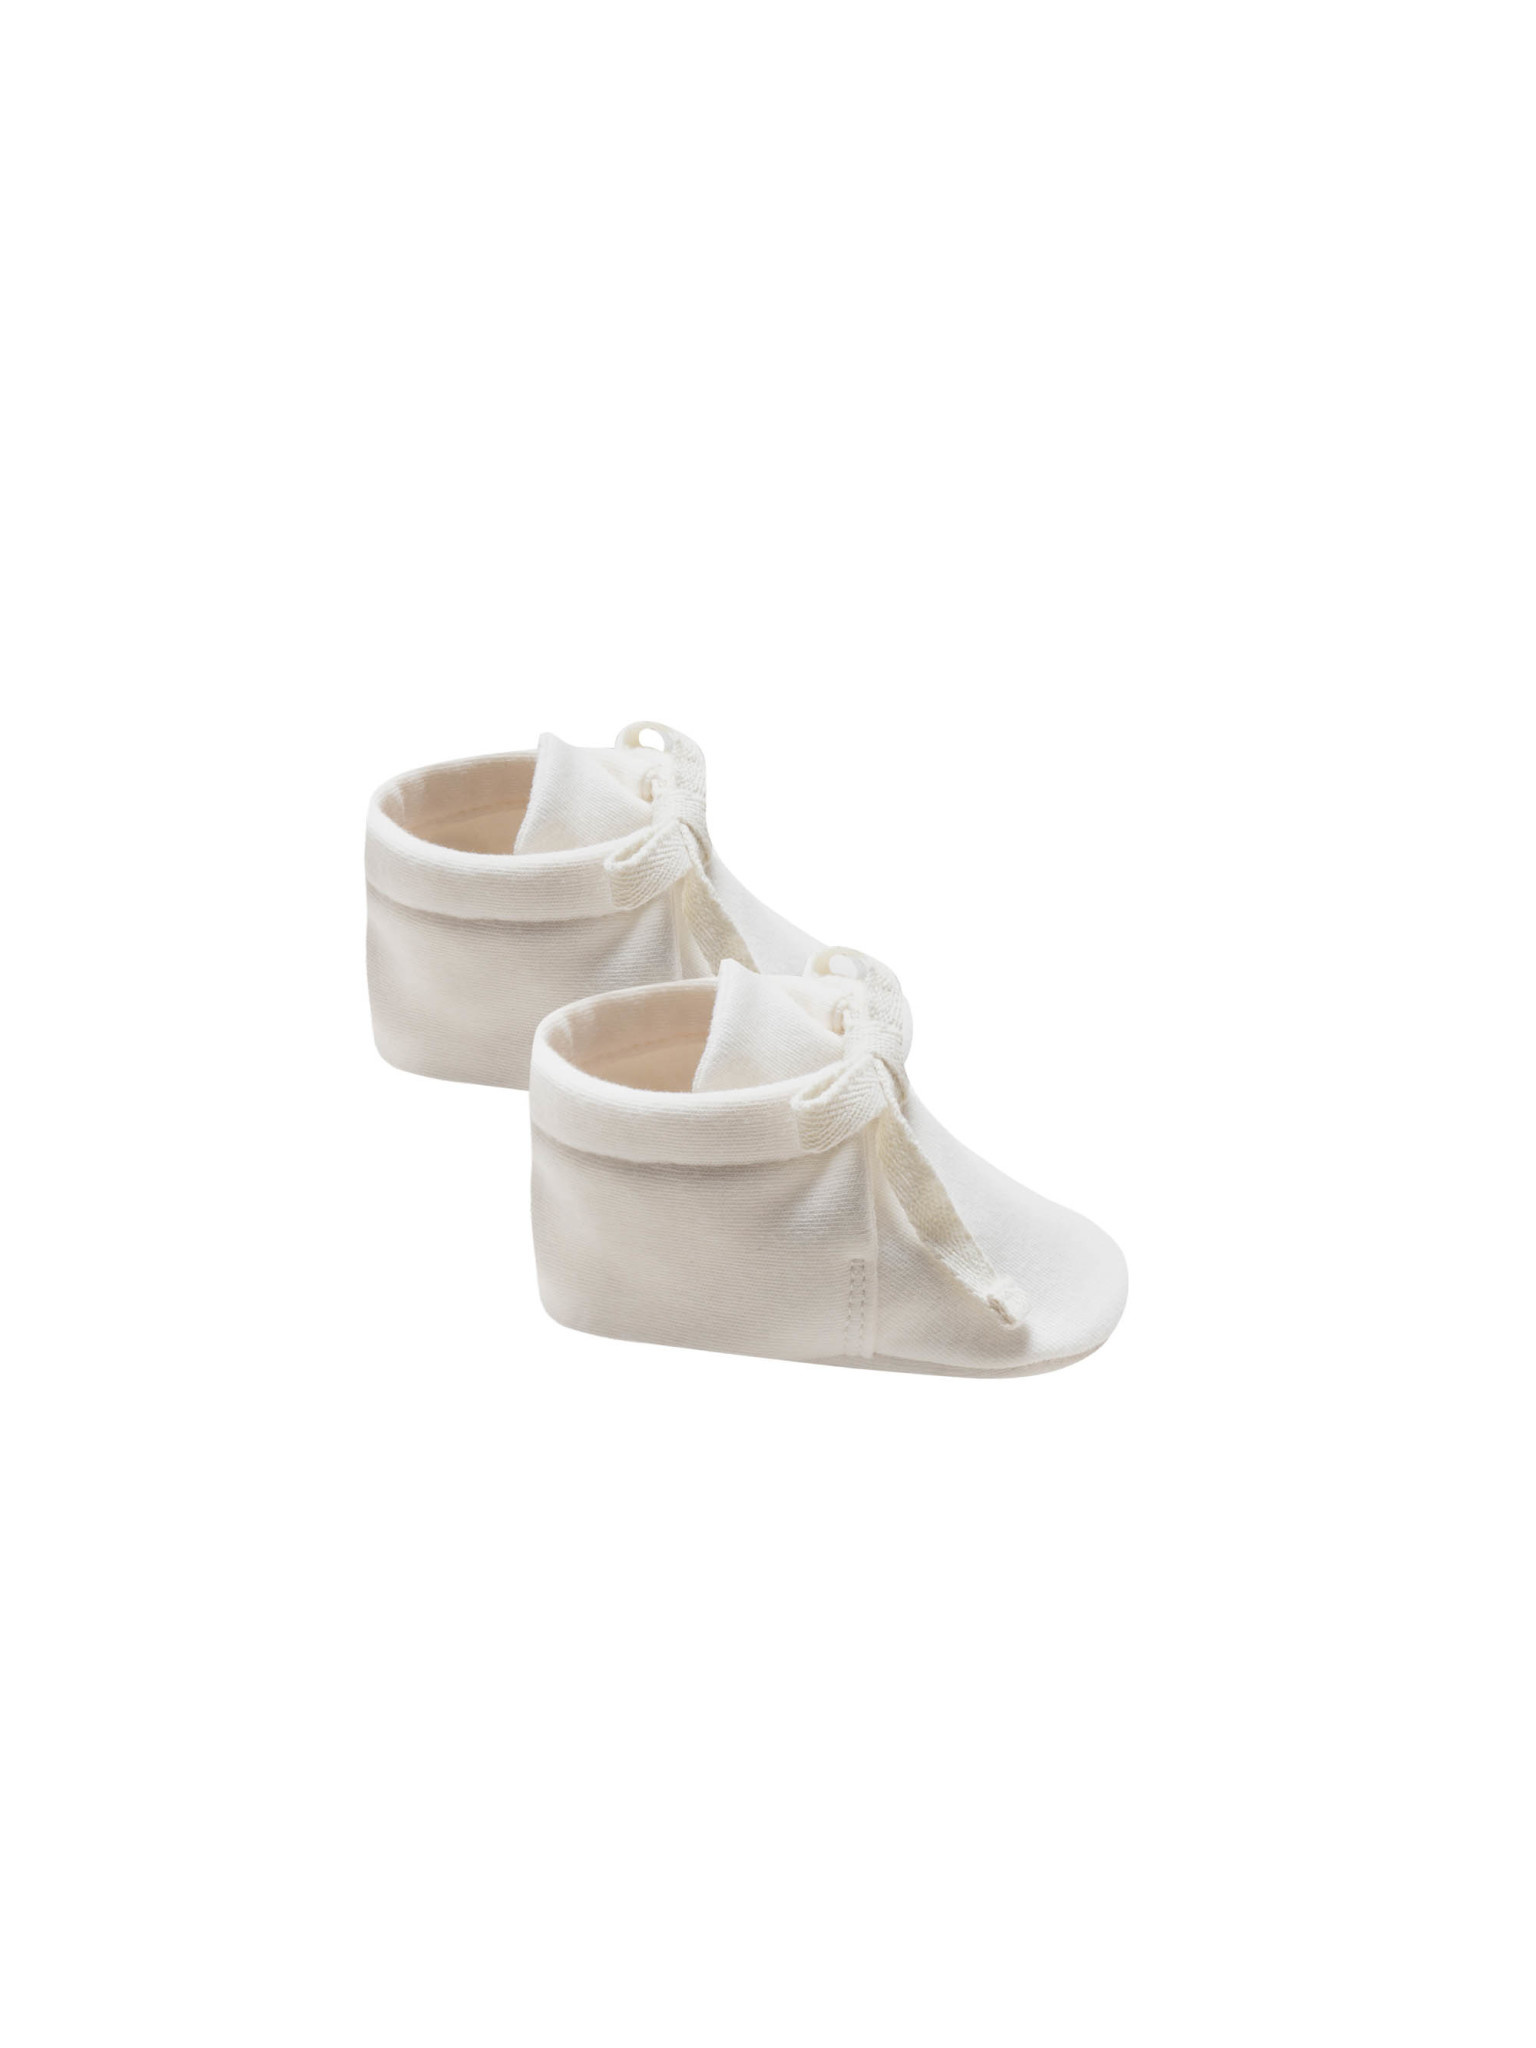 Quincy Mae - QM Quincy Mae Baby Booties in Ivory